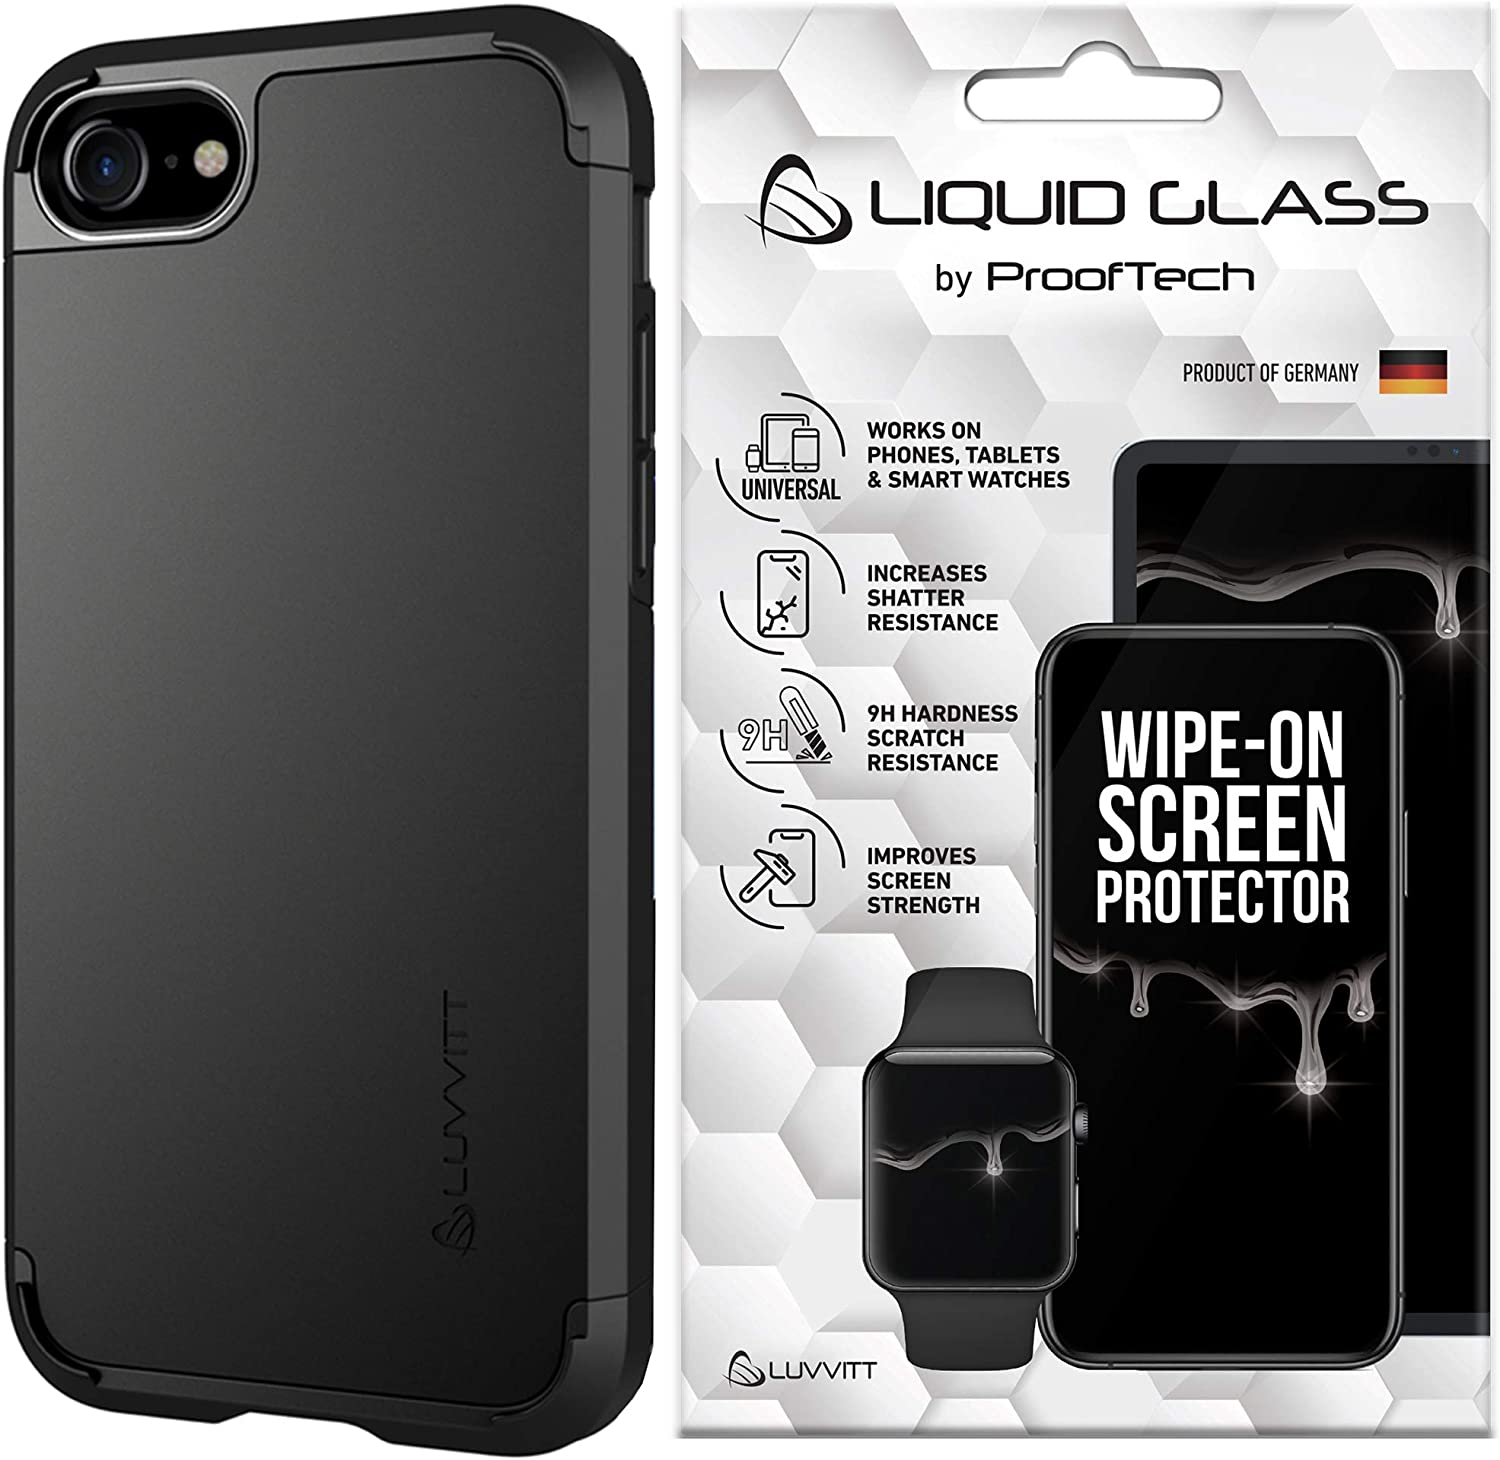 Luvvitt Ultra Armor Case and Liquid Glass Screen Protector Bundle for iPhone SE 2020 / iPhone 7 / iPhone 8 - Black